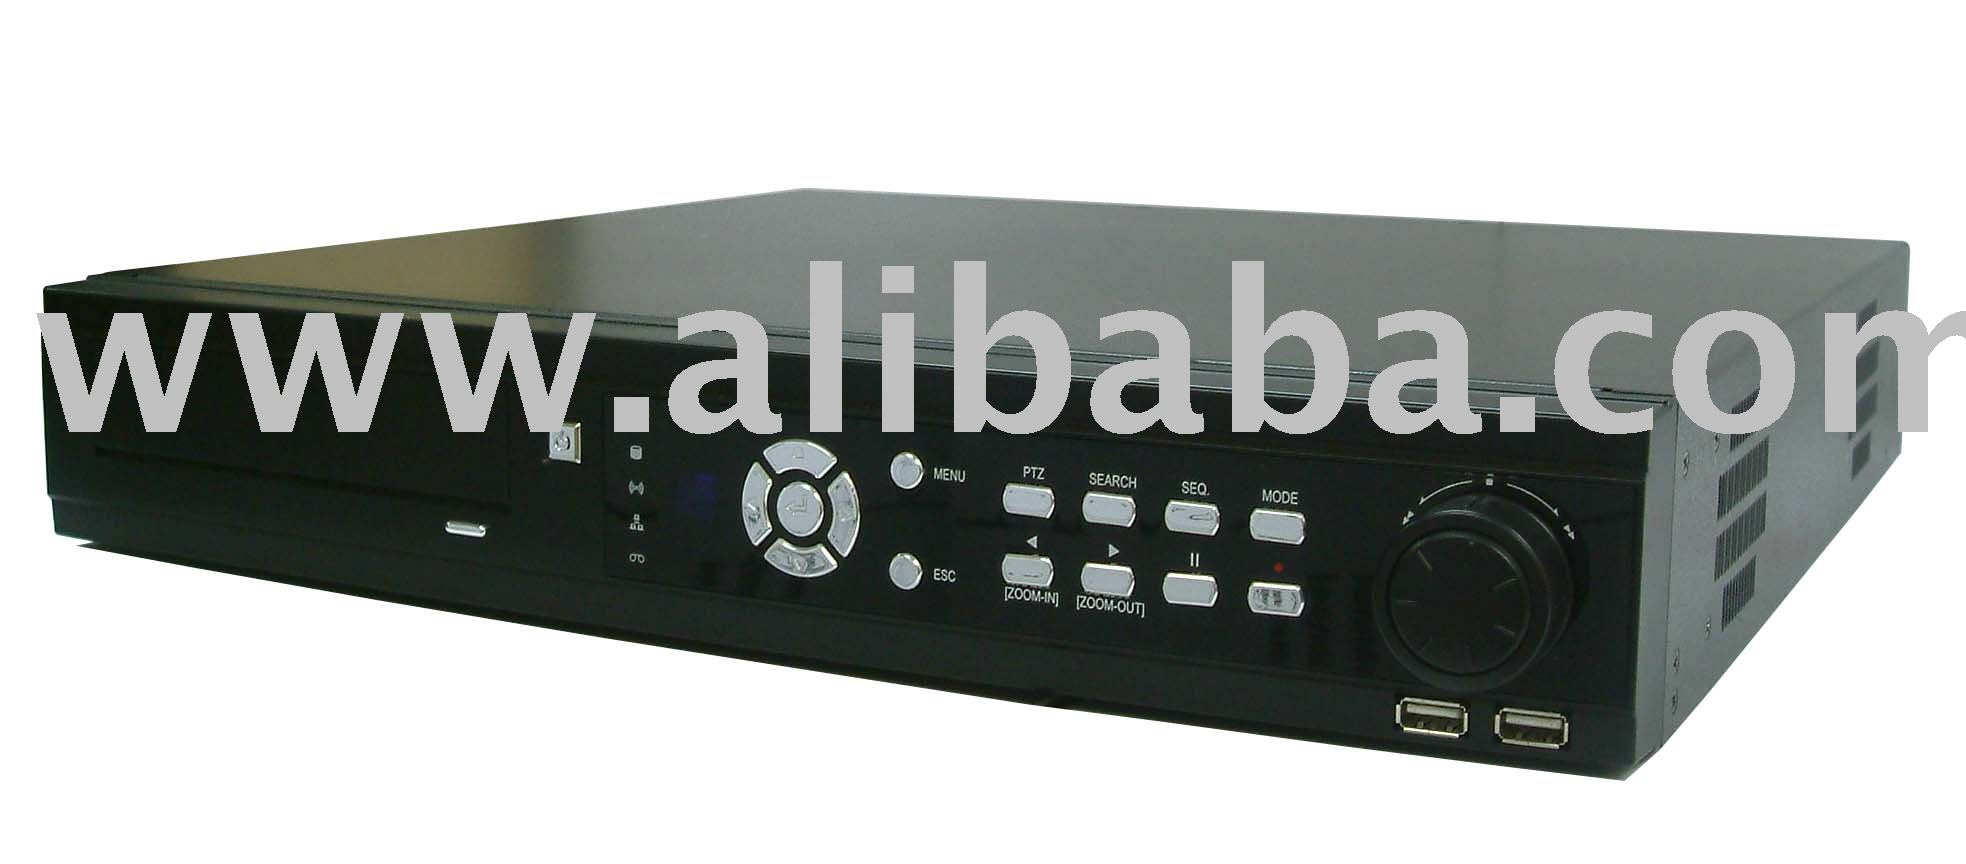 Dvr Stand Alone Mpeg4 Suppliers And Standalone Manufacturers At